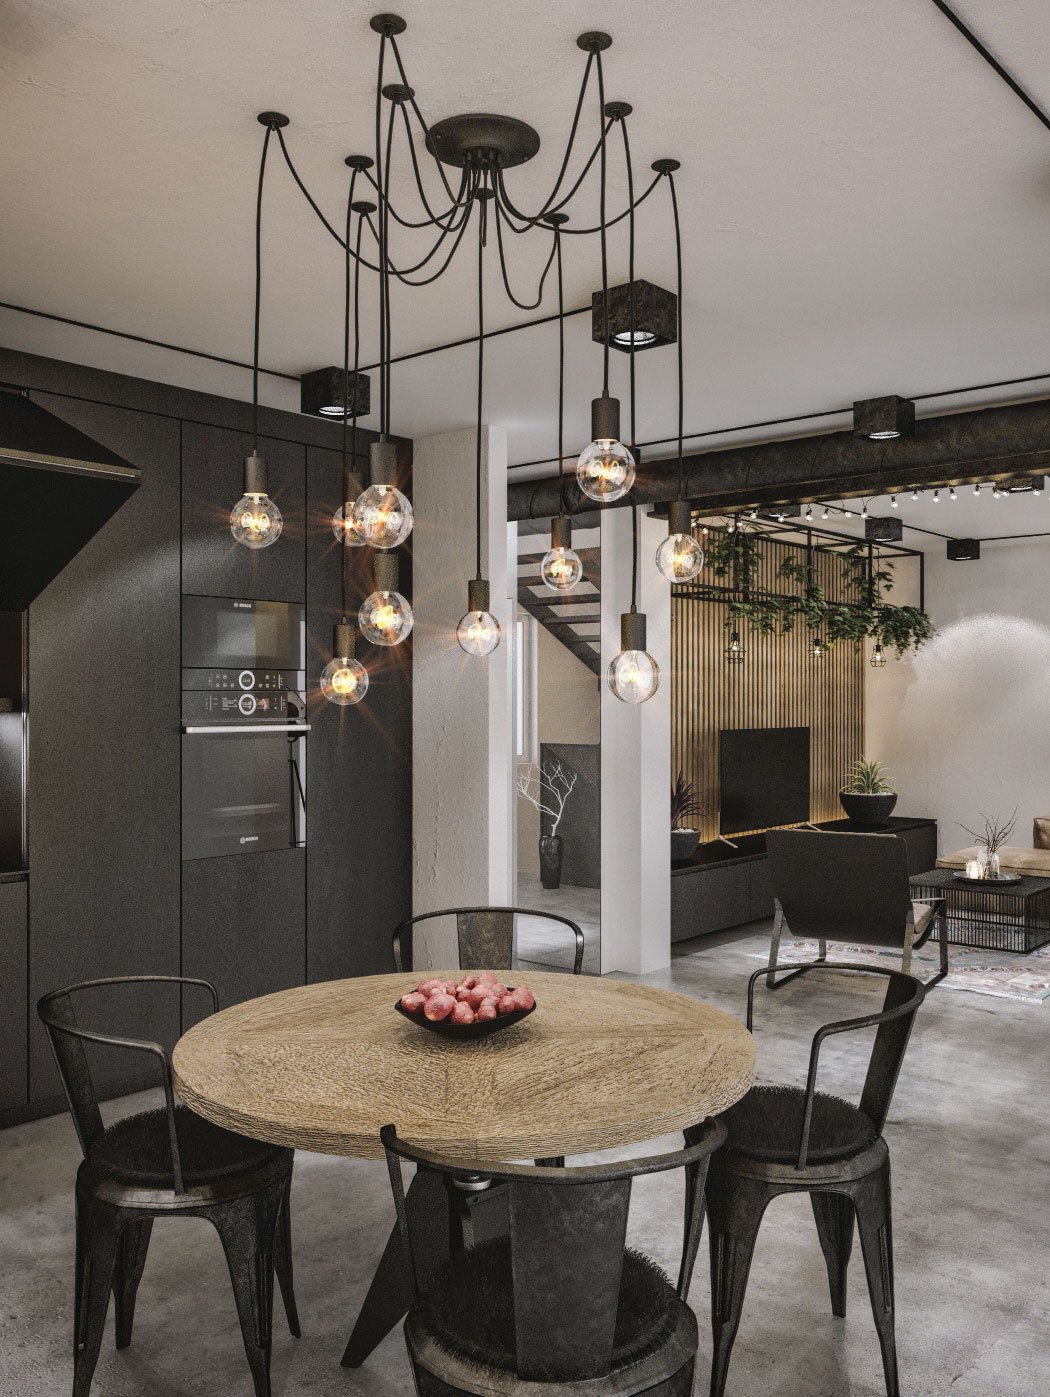 Black becomes the color of choice inside the industrial kitchen and dining area